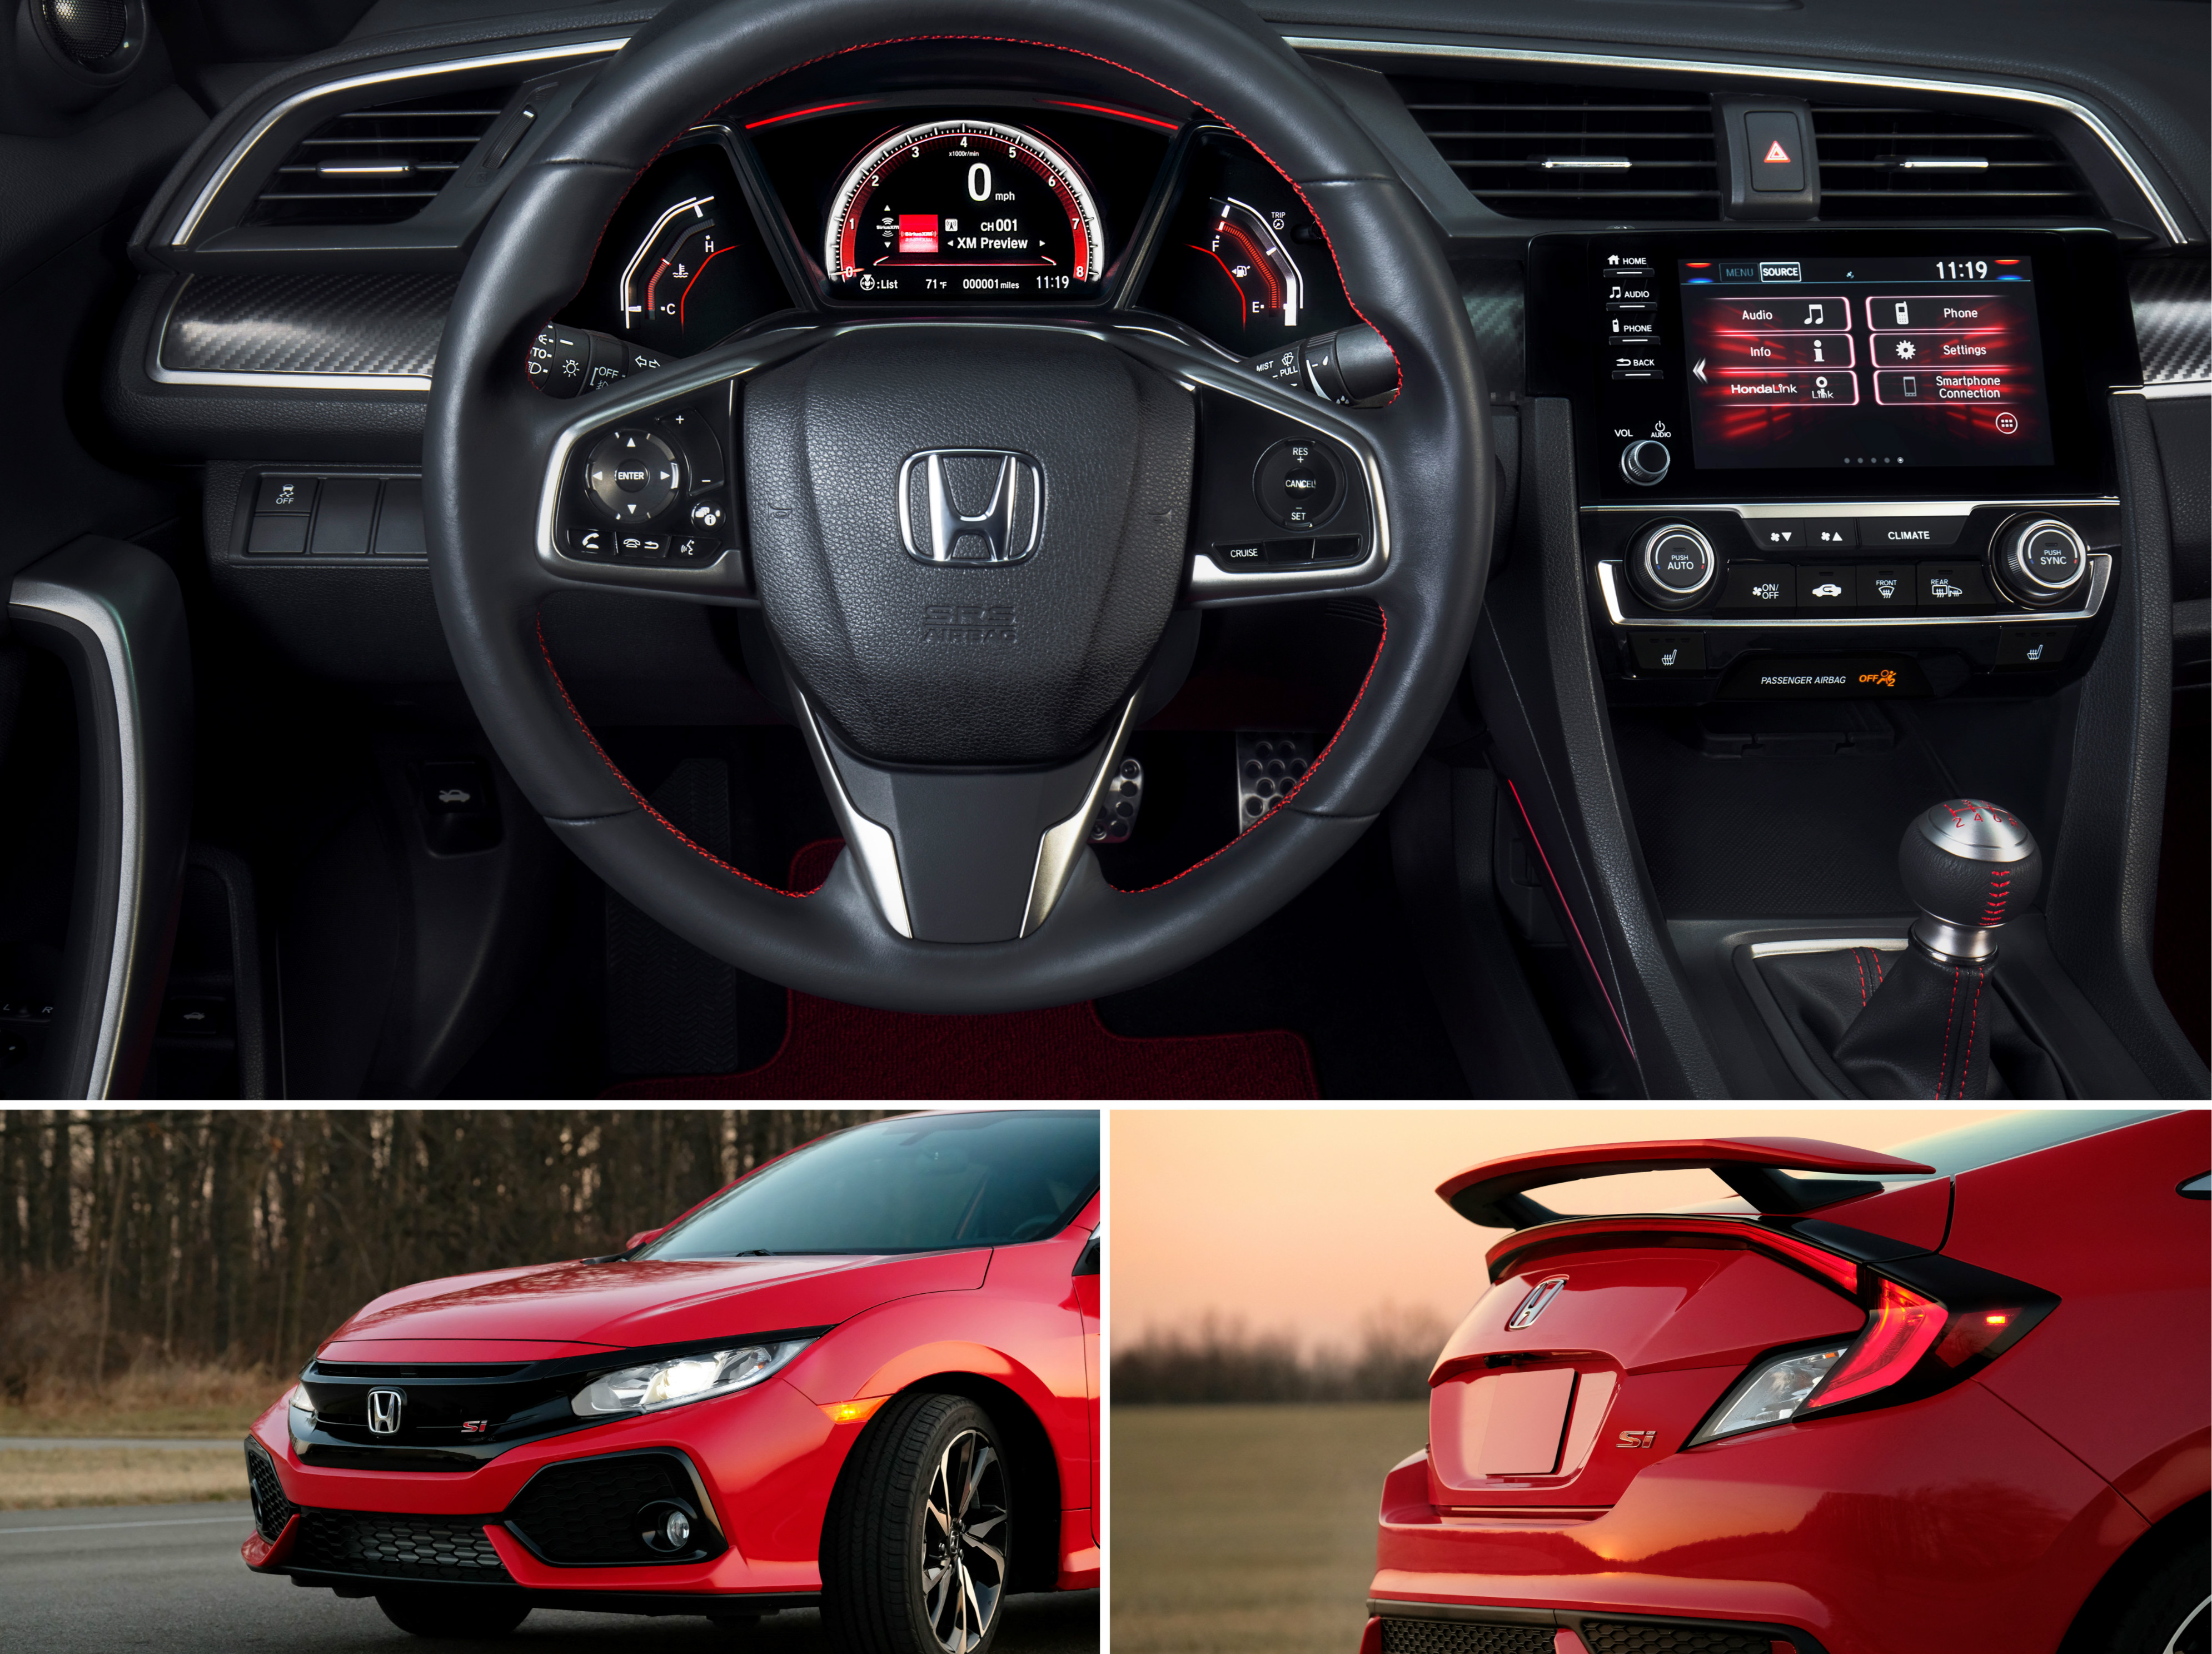 2019 Honda Civic Si Sedan and Coupe